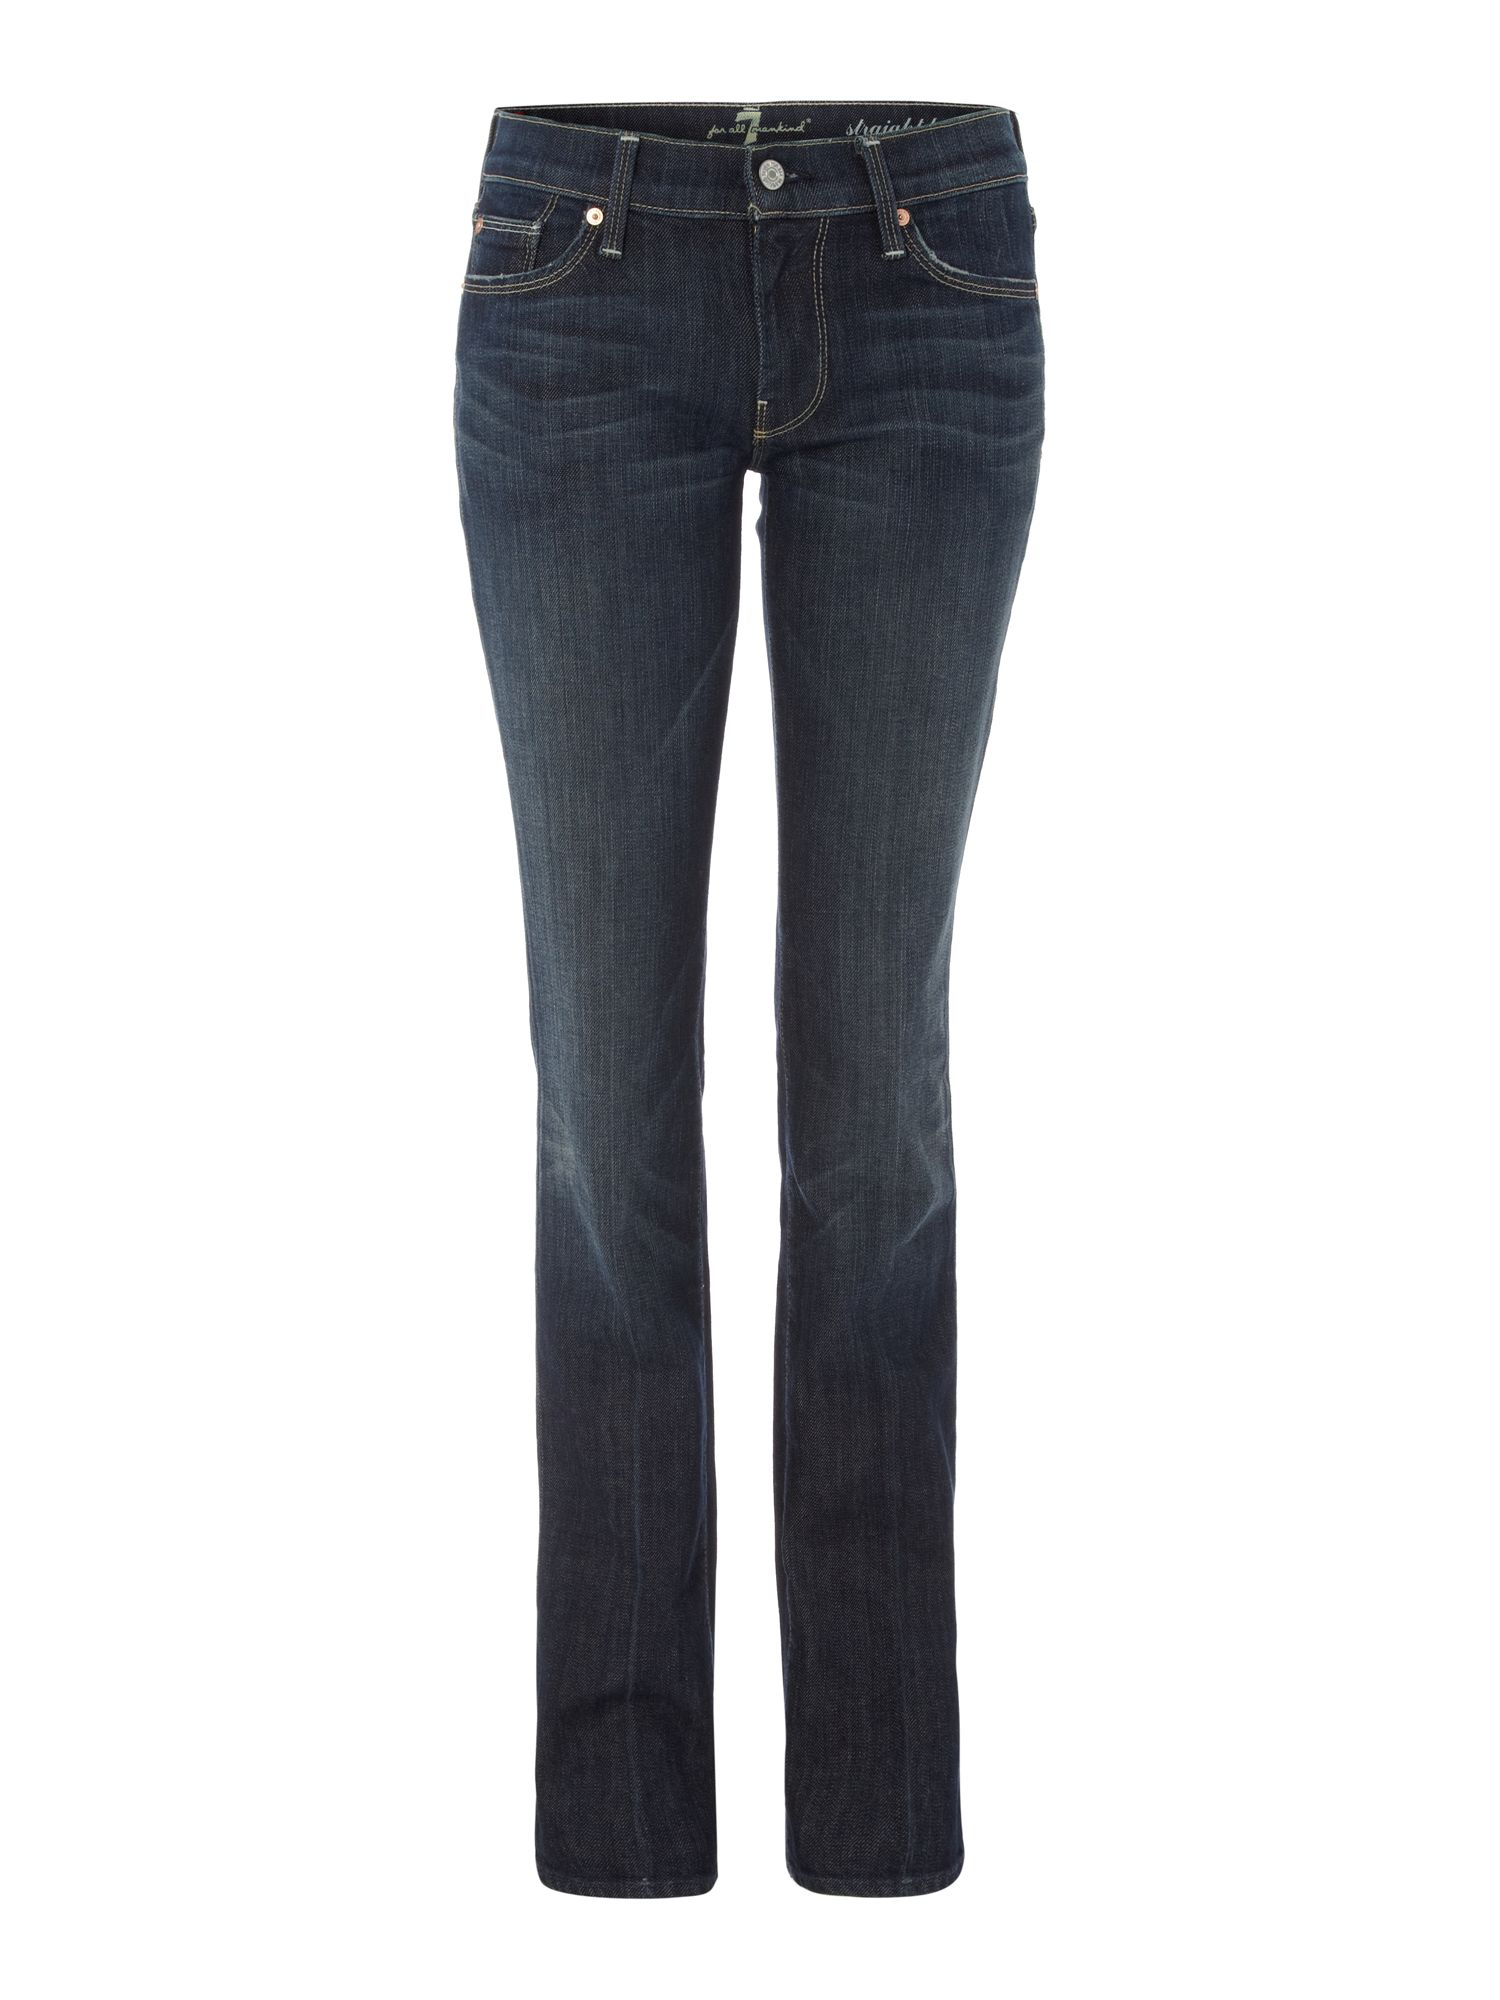 Straight leg jeans in New York Dark